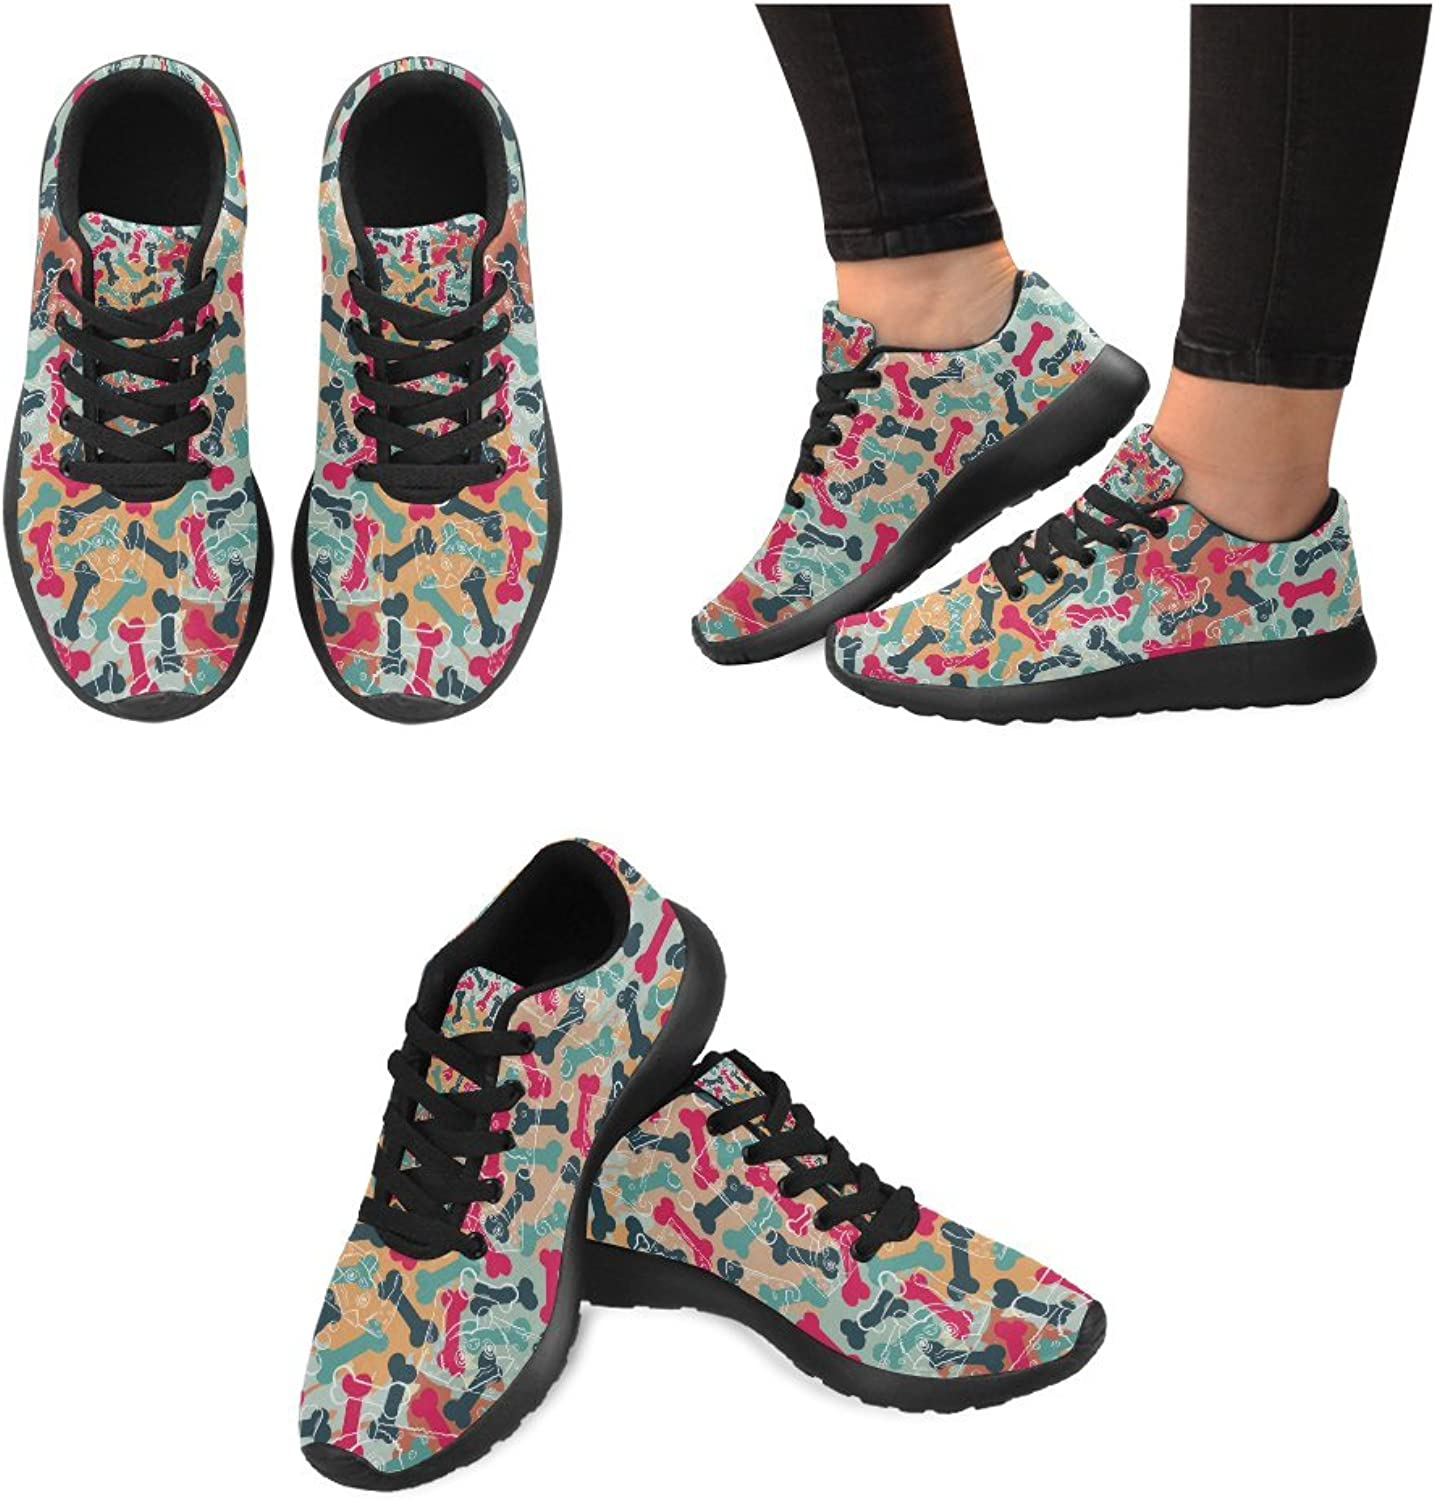 InterestPrint colord Bones Print on Women's Running shoes Casual Lightweight Athletic Sneakers US Size 6-15